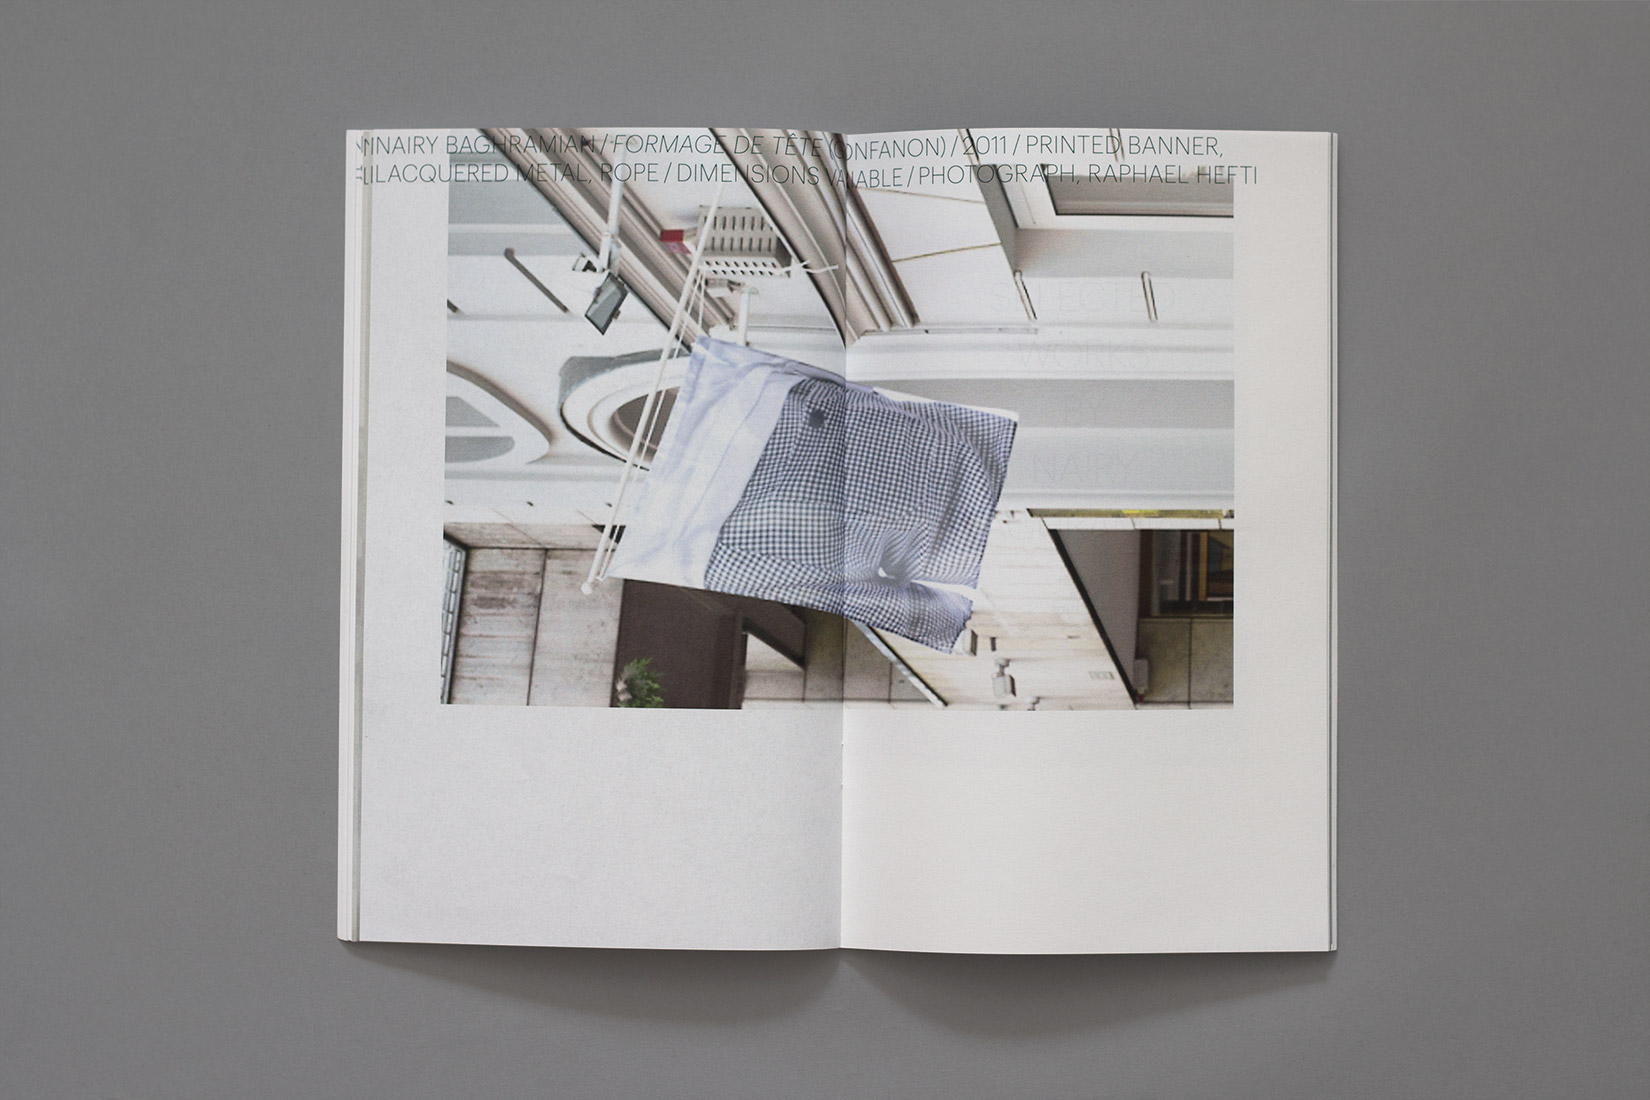 Livre d'artiste, Nairy Baghramian, Selected works by Nairy Baghramian